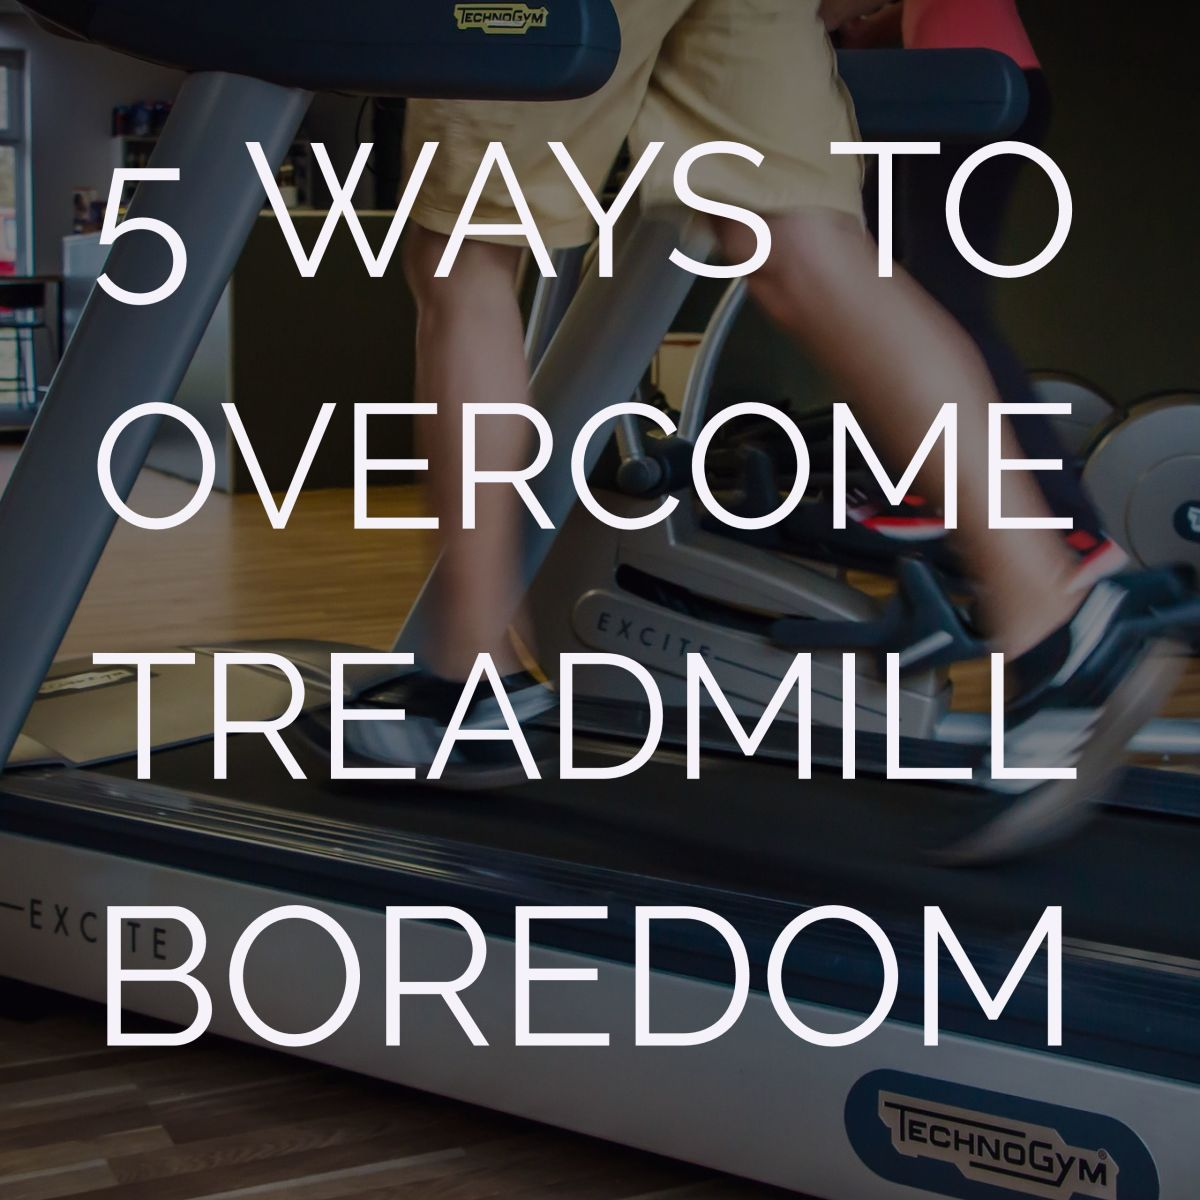 5 Ways to Overcome Treadmill Boredom